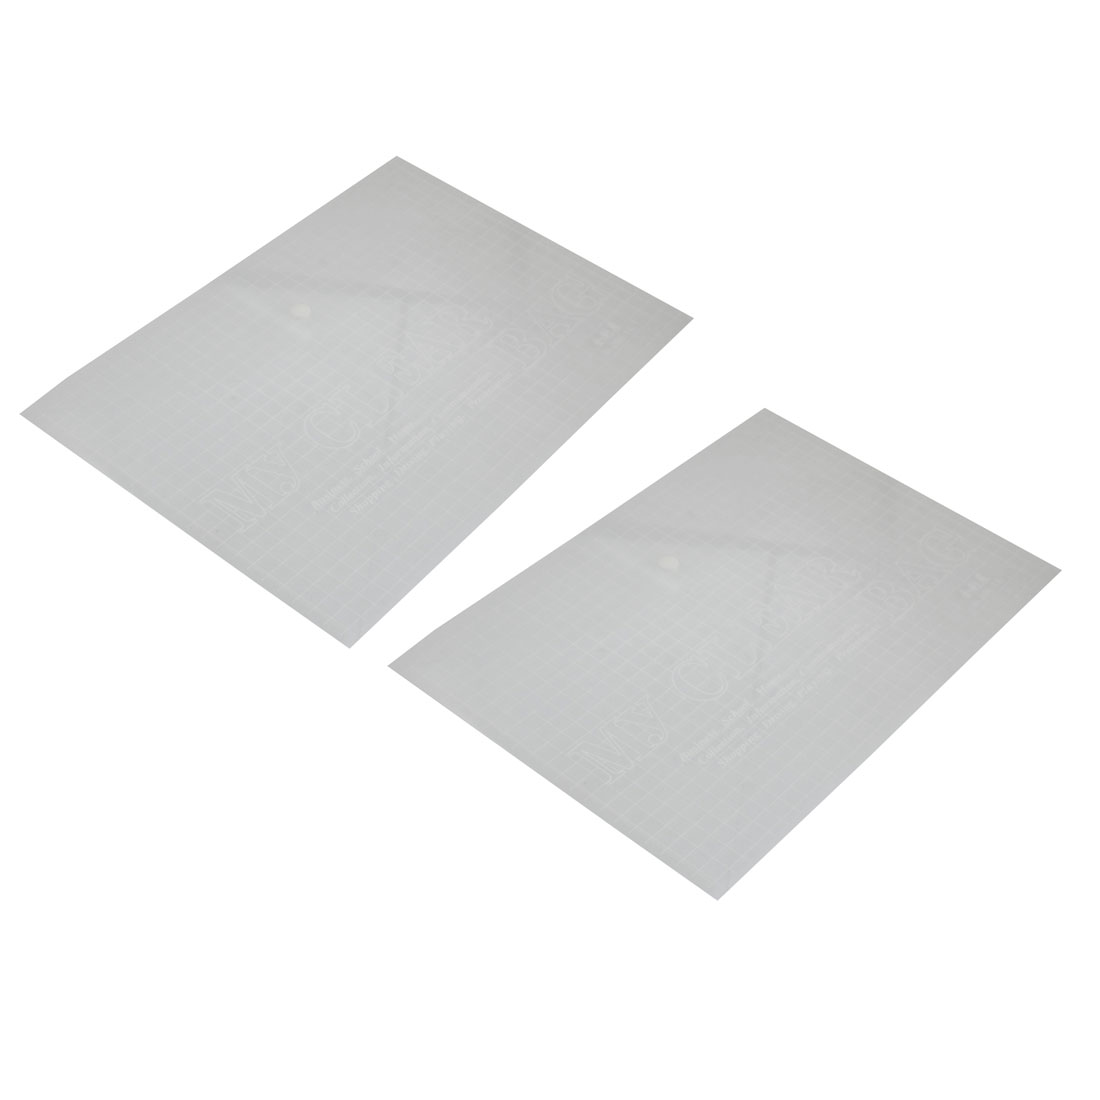 2 Pcs Clear White Press Button Closure PVC File Document Holder Bag for A4 Paper